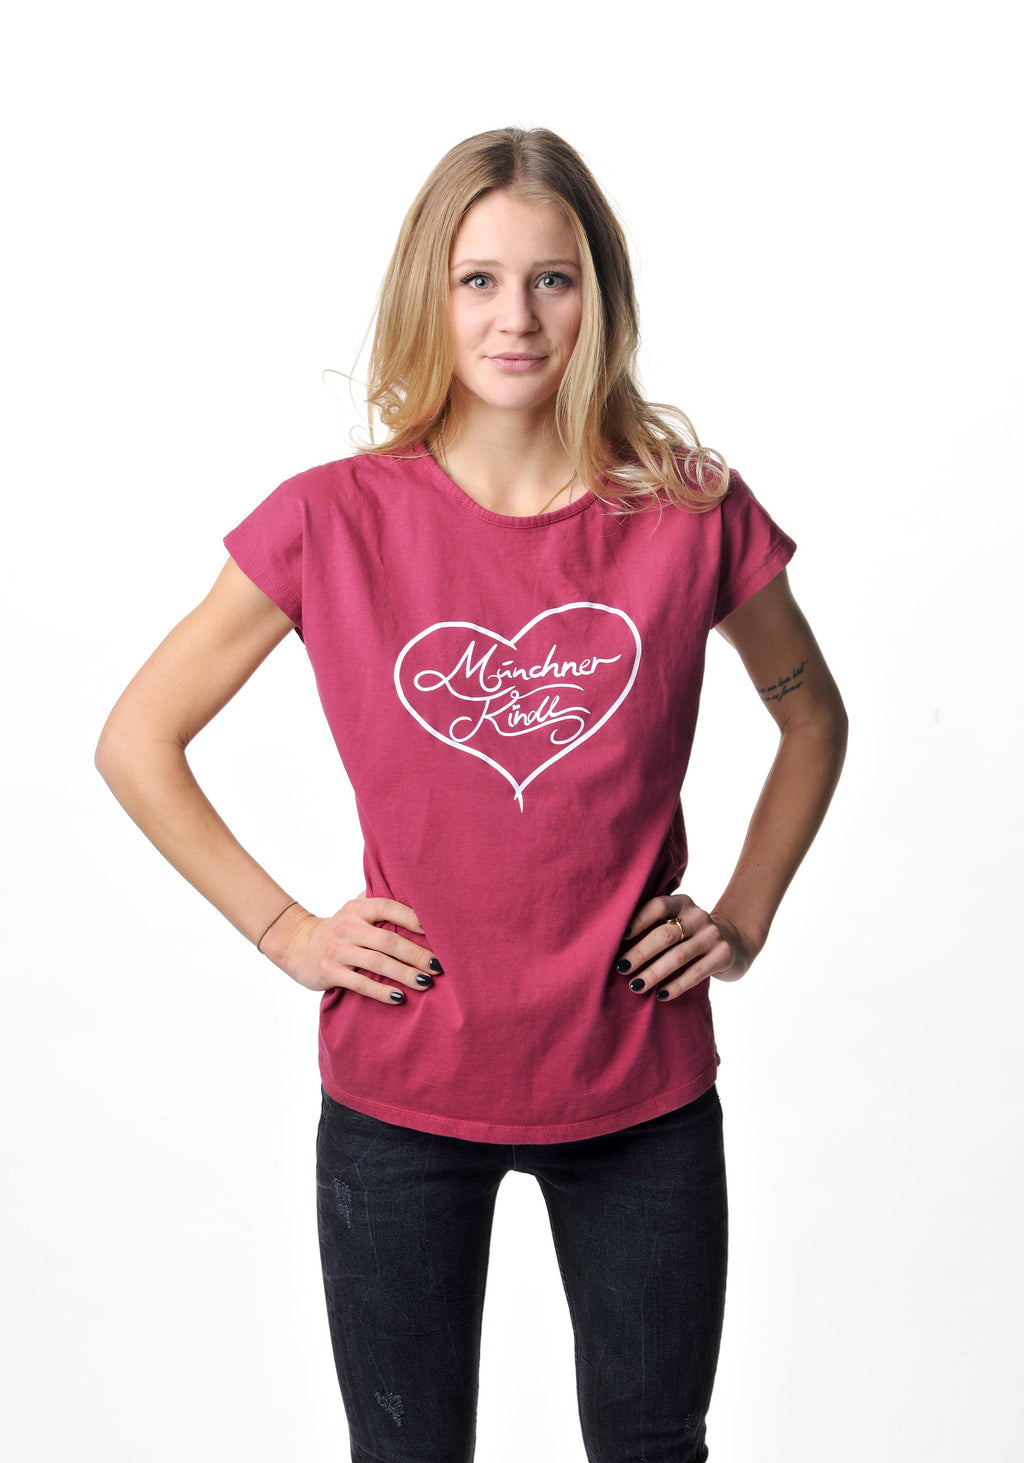 Münchner Kindl Shirt Girls